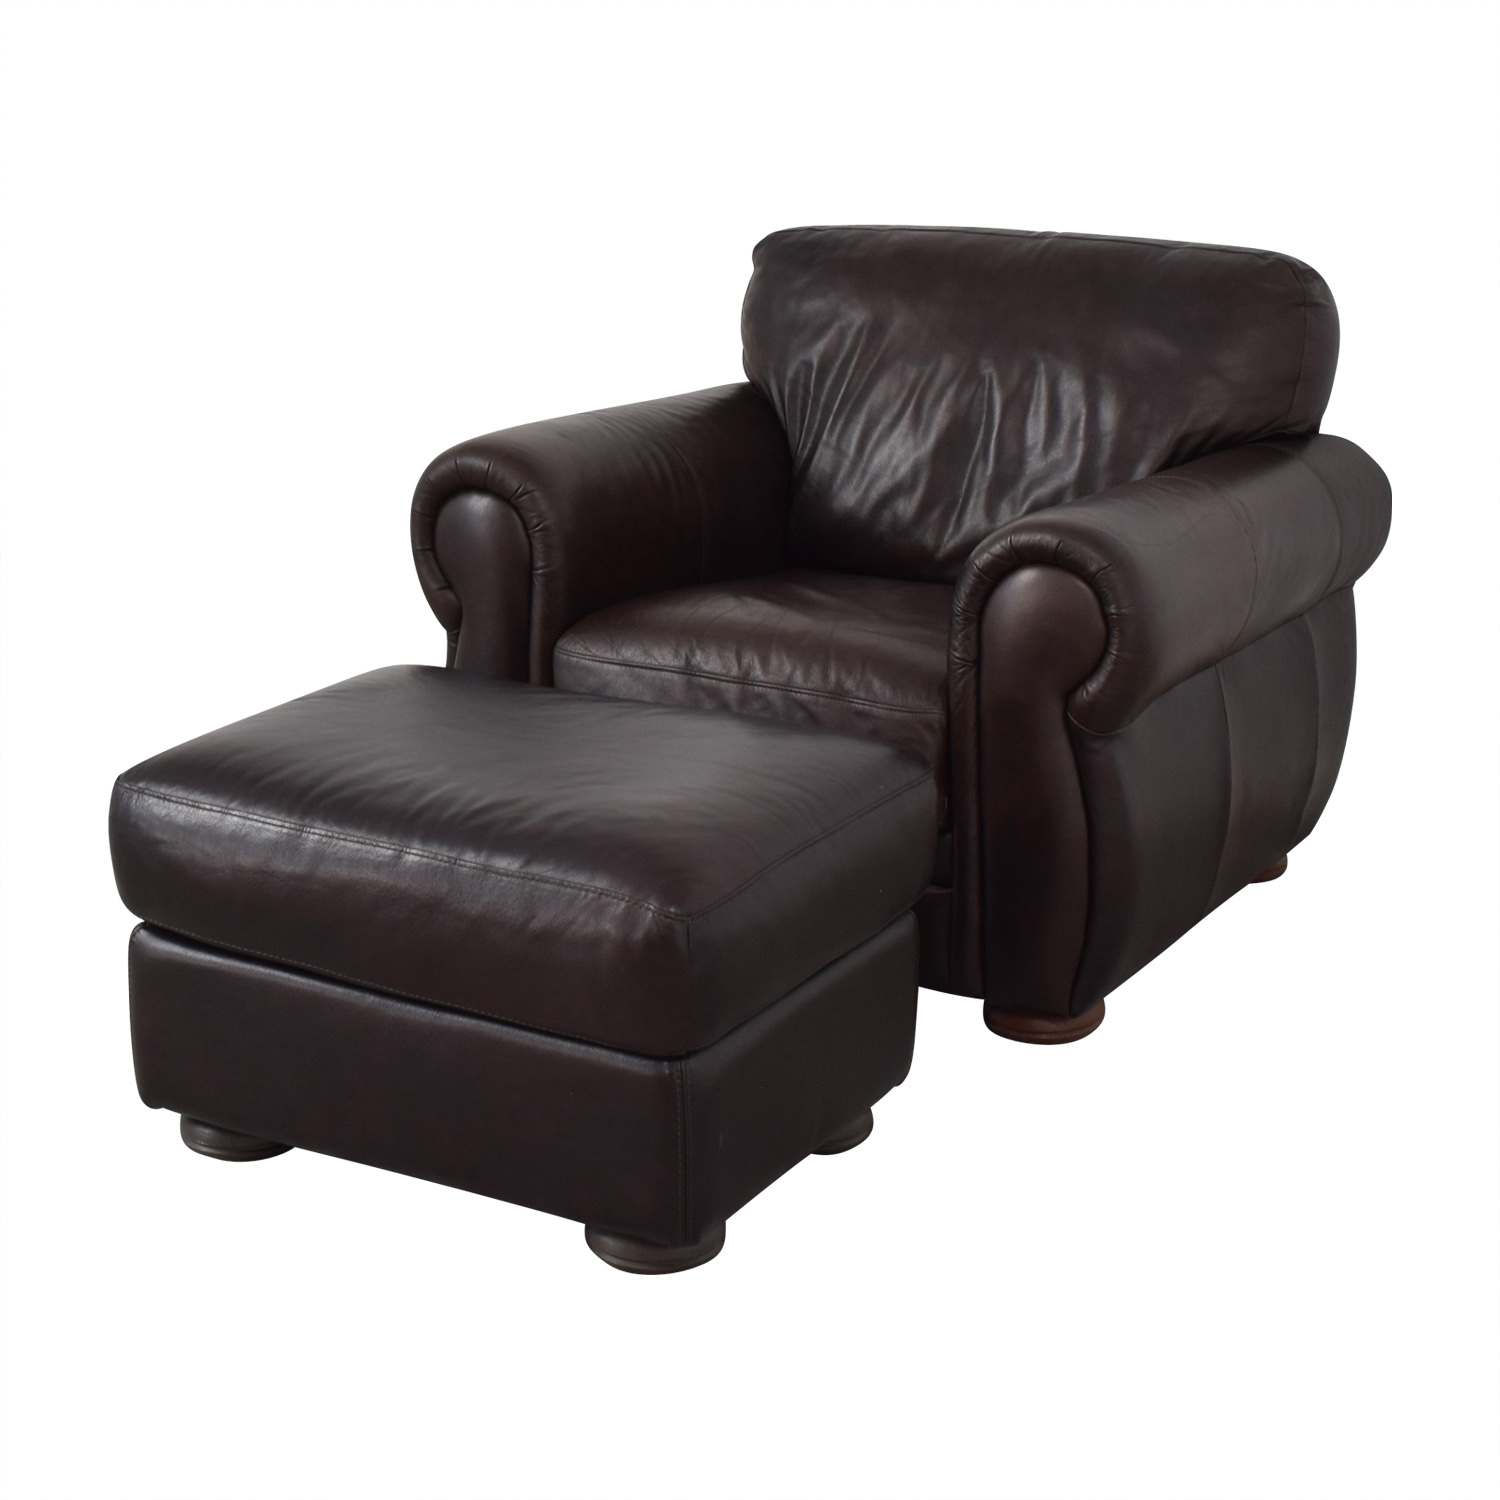 brown accent chair with ottoman dining room covers for sale 65 off raymour flanigan buy and